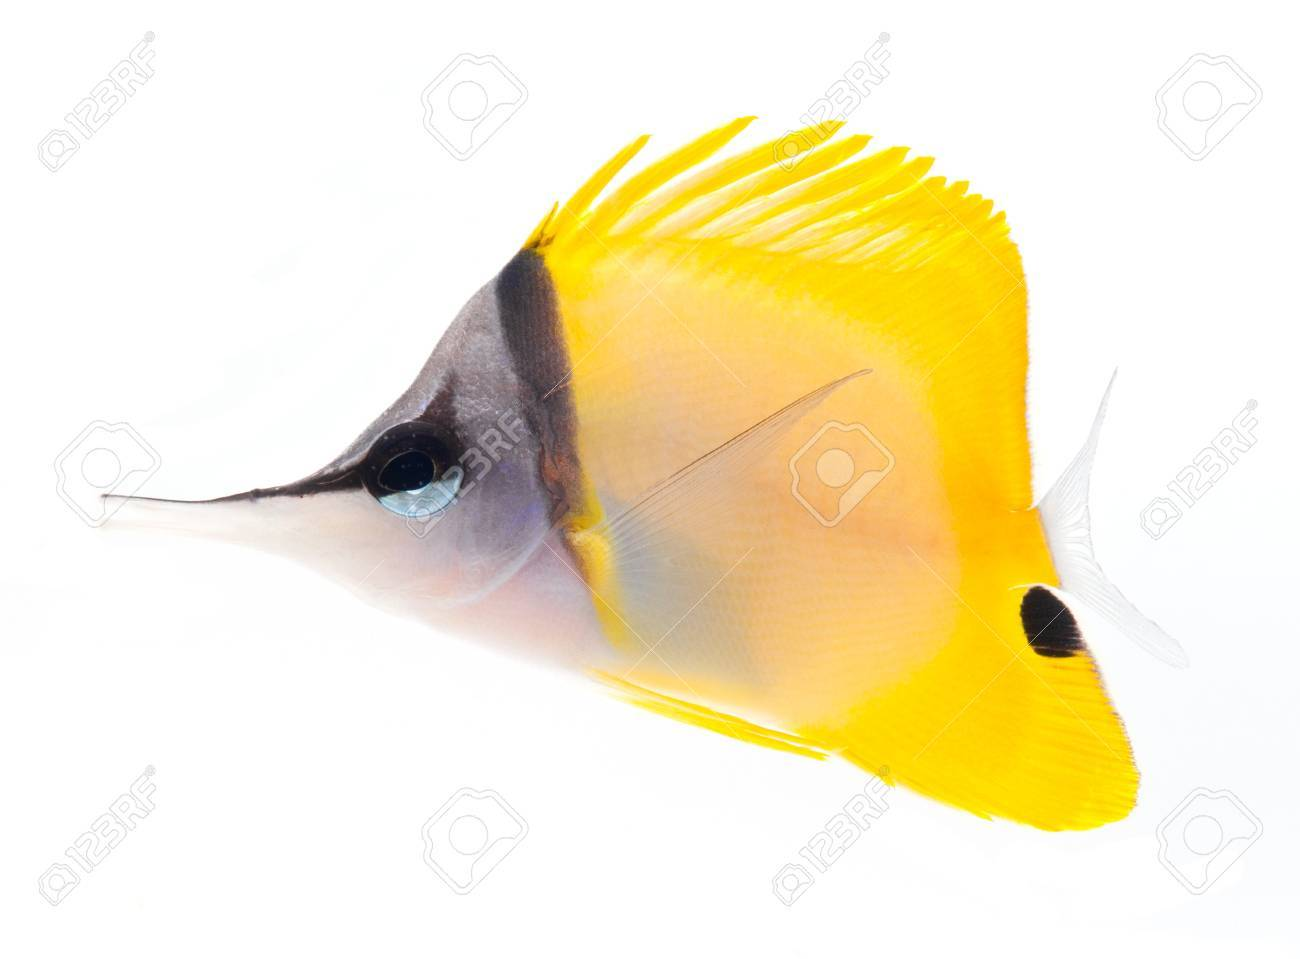 yellow longnose butterflyfish isolated on white background Stock Photo - 11108033